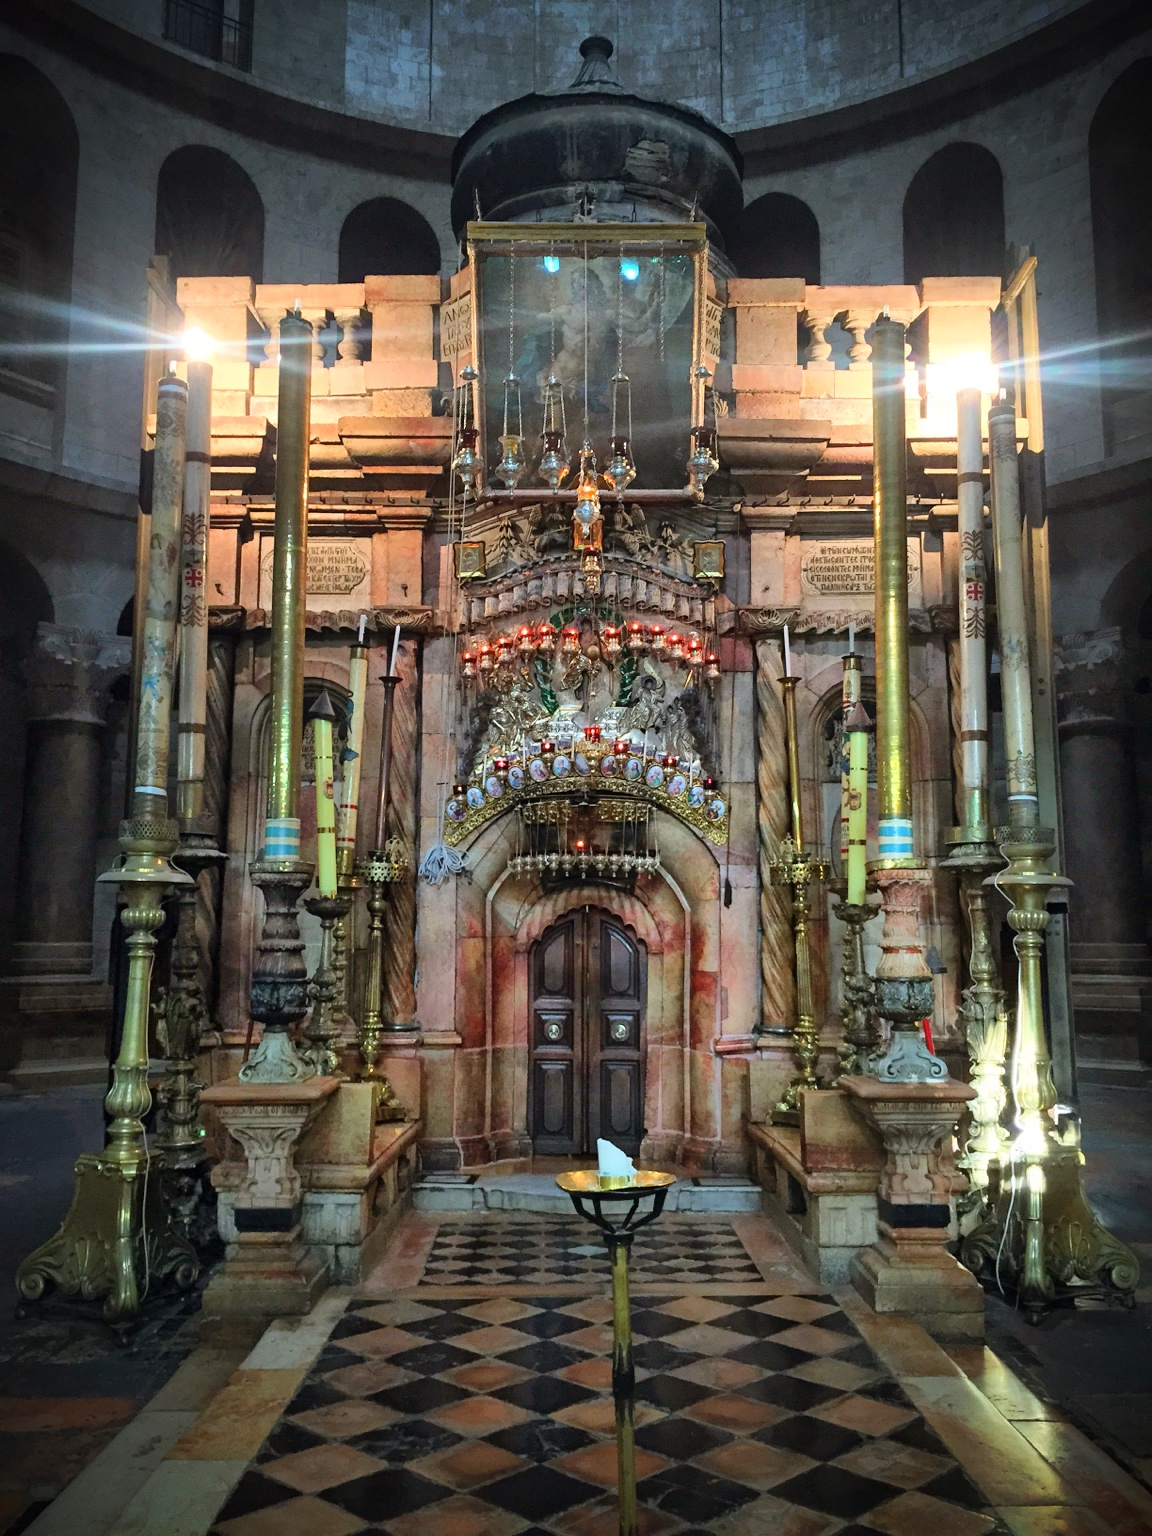 The Aedicule, containing the Angel Stone and the tomb of Jesus.